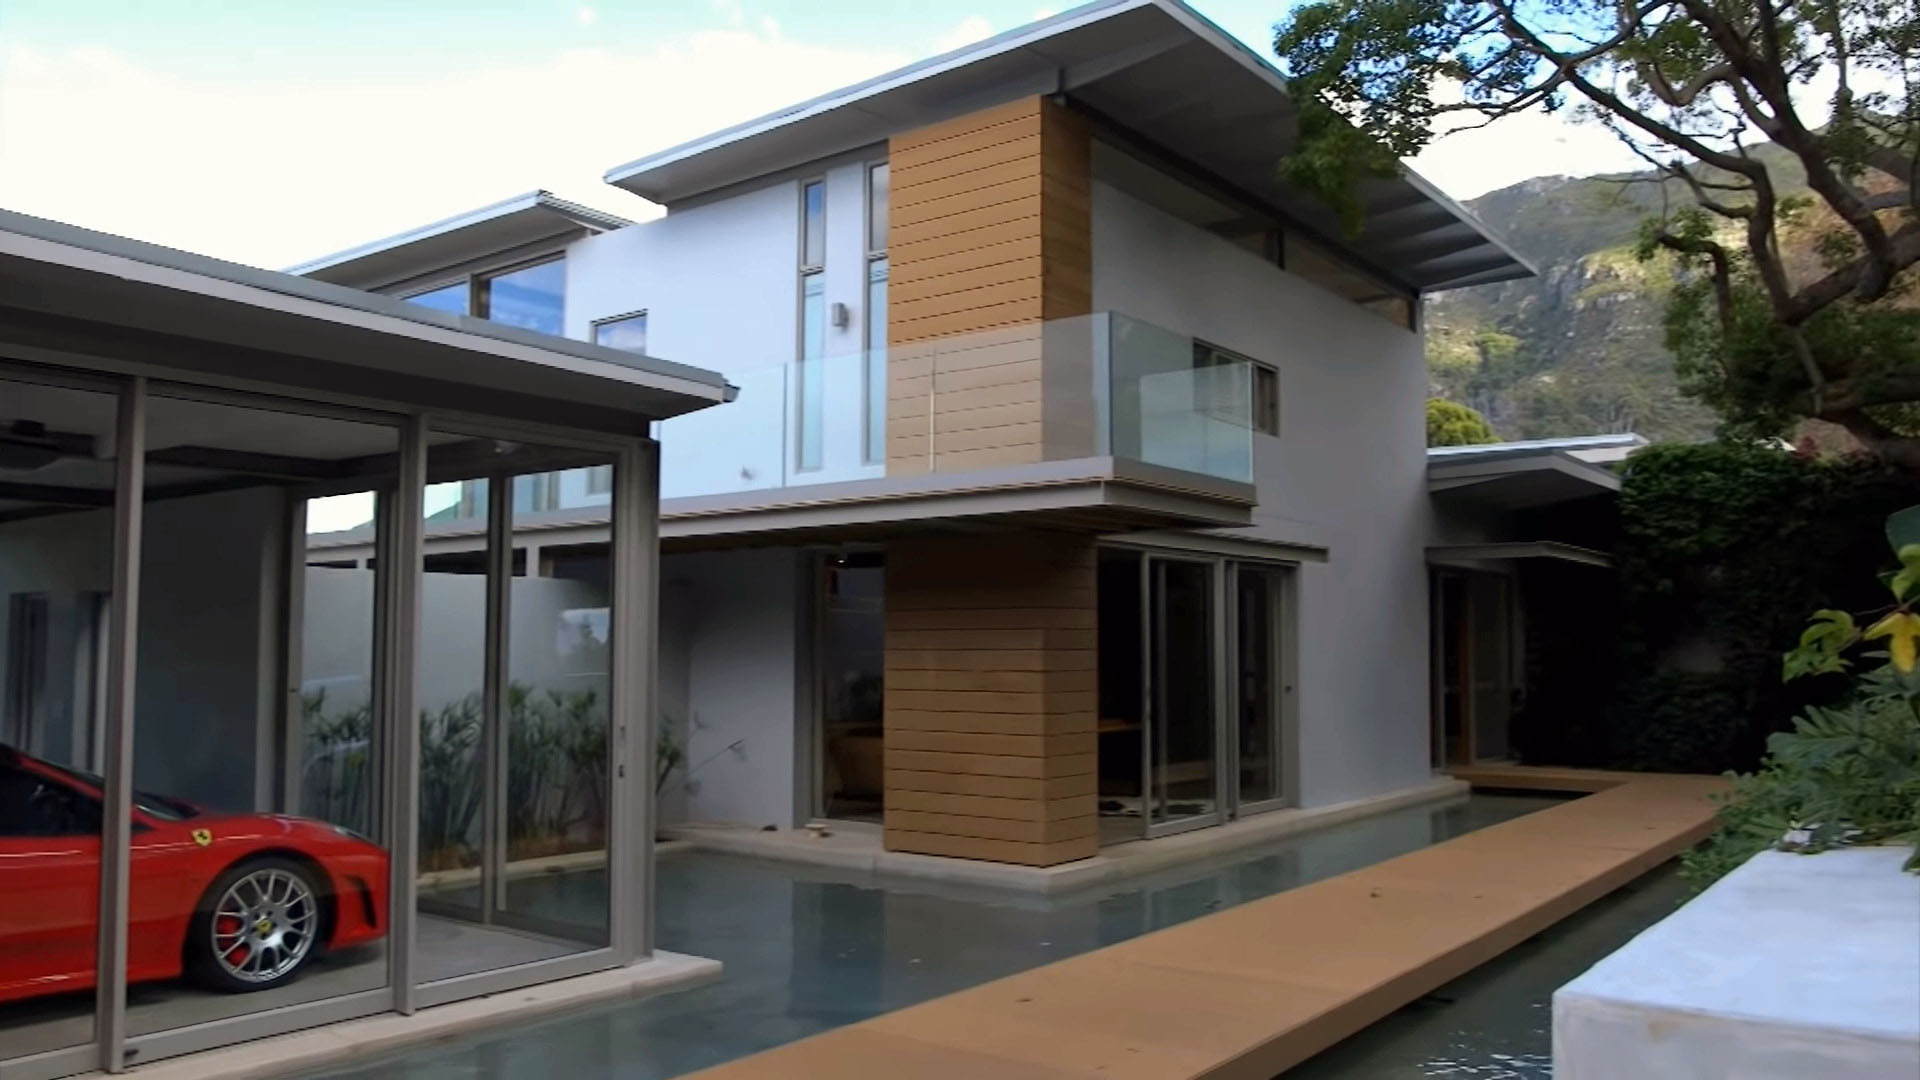 Composite decking used as an exterior house cladding.